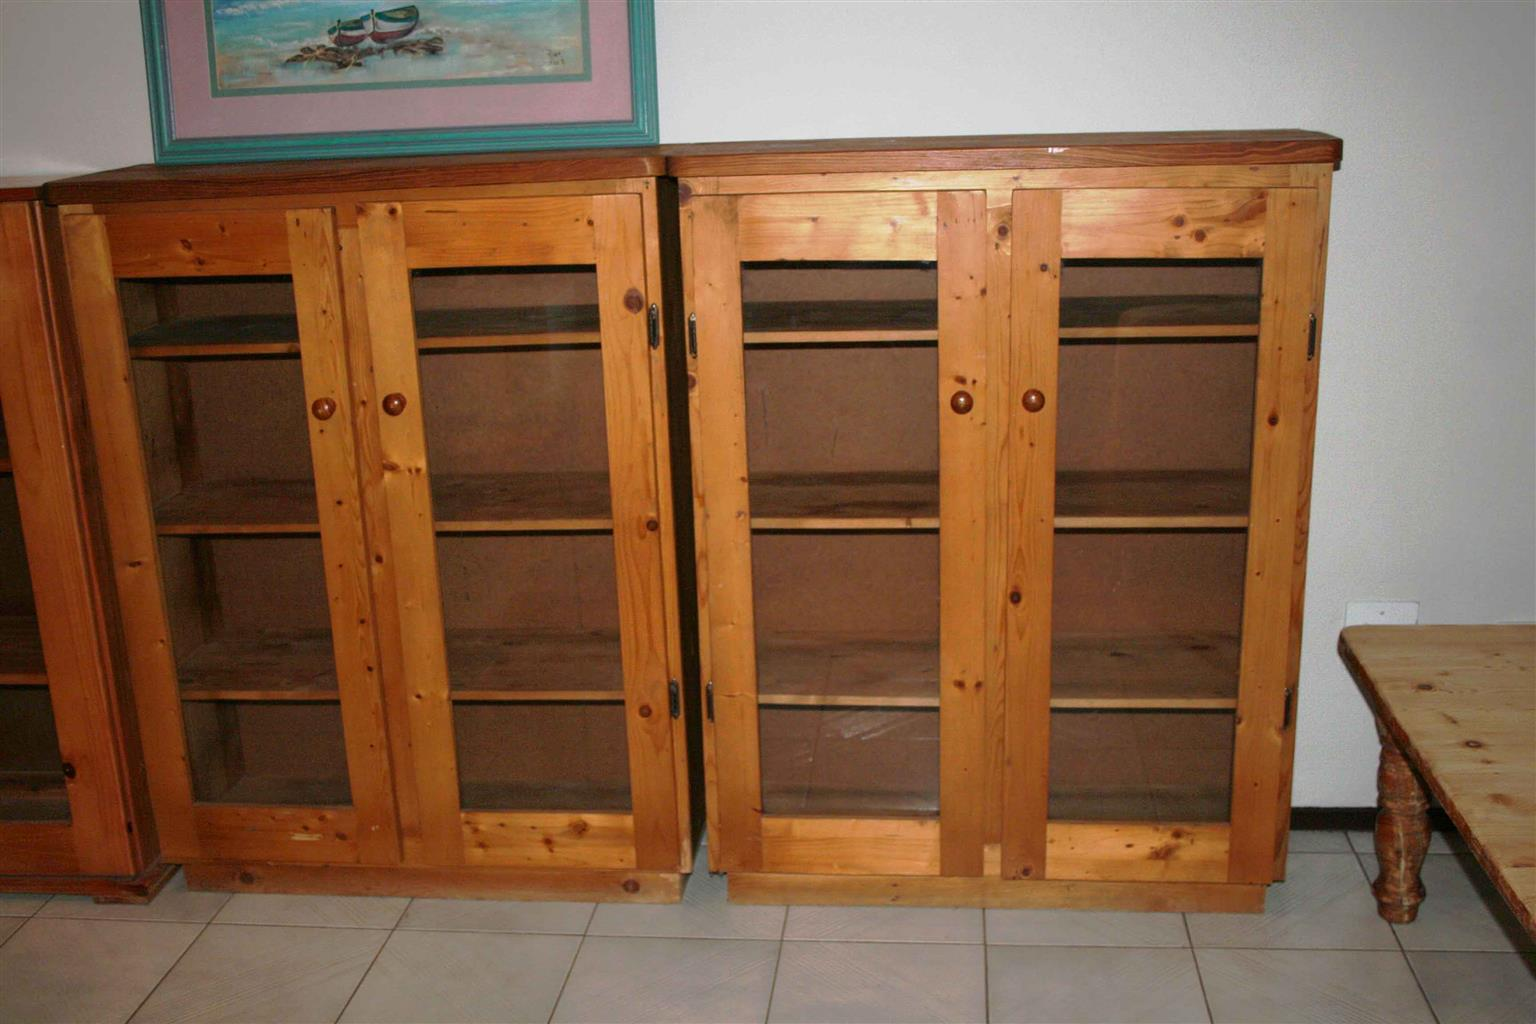 Book Shelfs Cupboards Four Cupboards Two Origon Knotty Pine and Two Pine with glass doors.